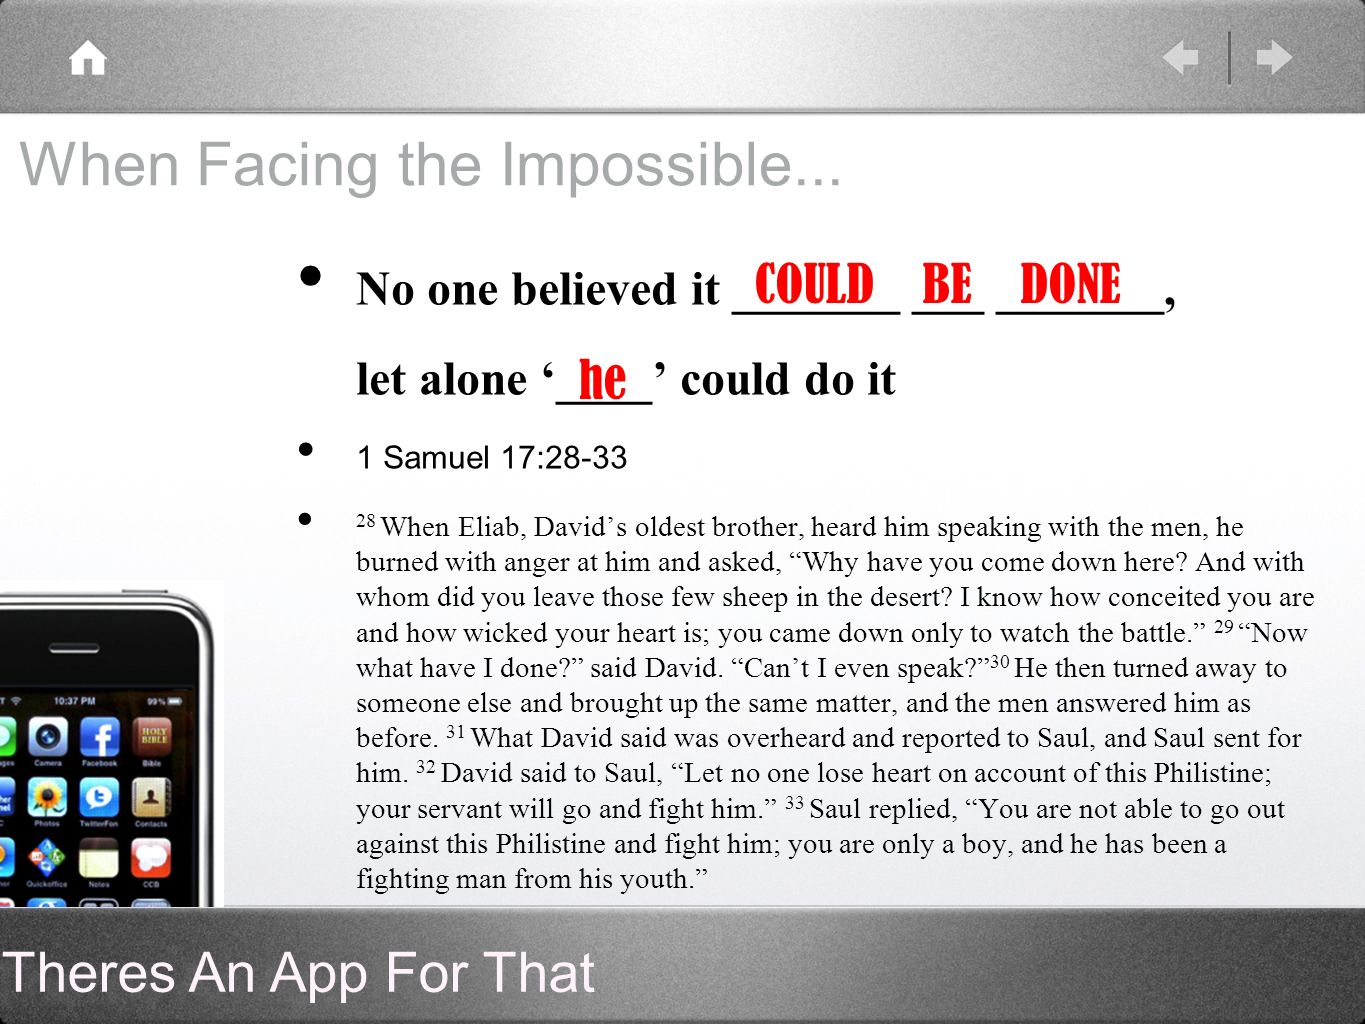 Theres An App For That When Facing the Impossible...